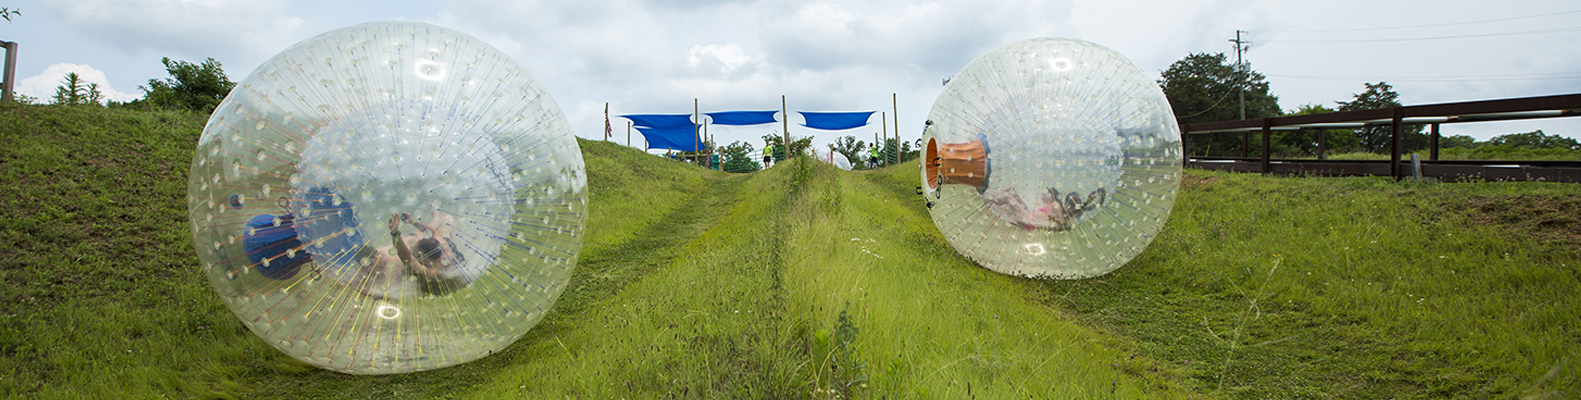 Outdoor Gravity Park In Pigeon Forge Zorbing In The Smoky Mountains